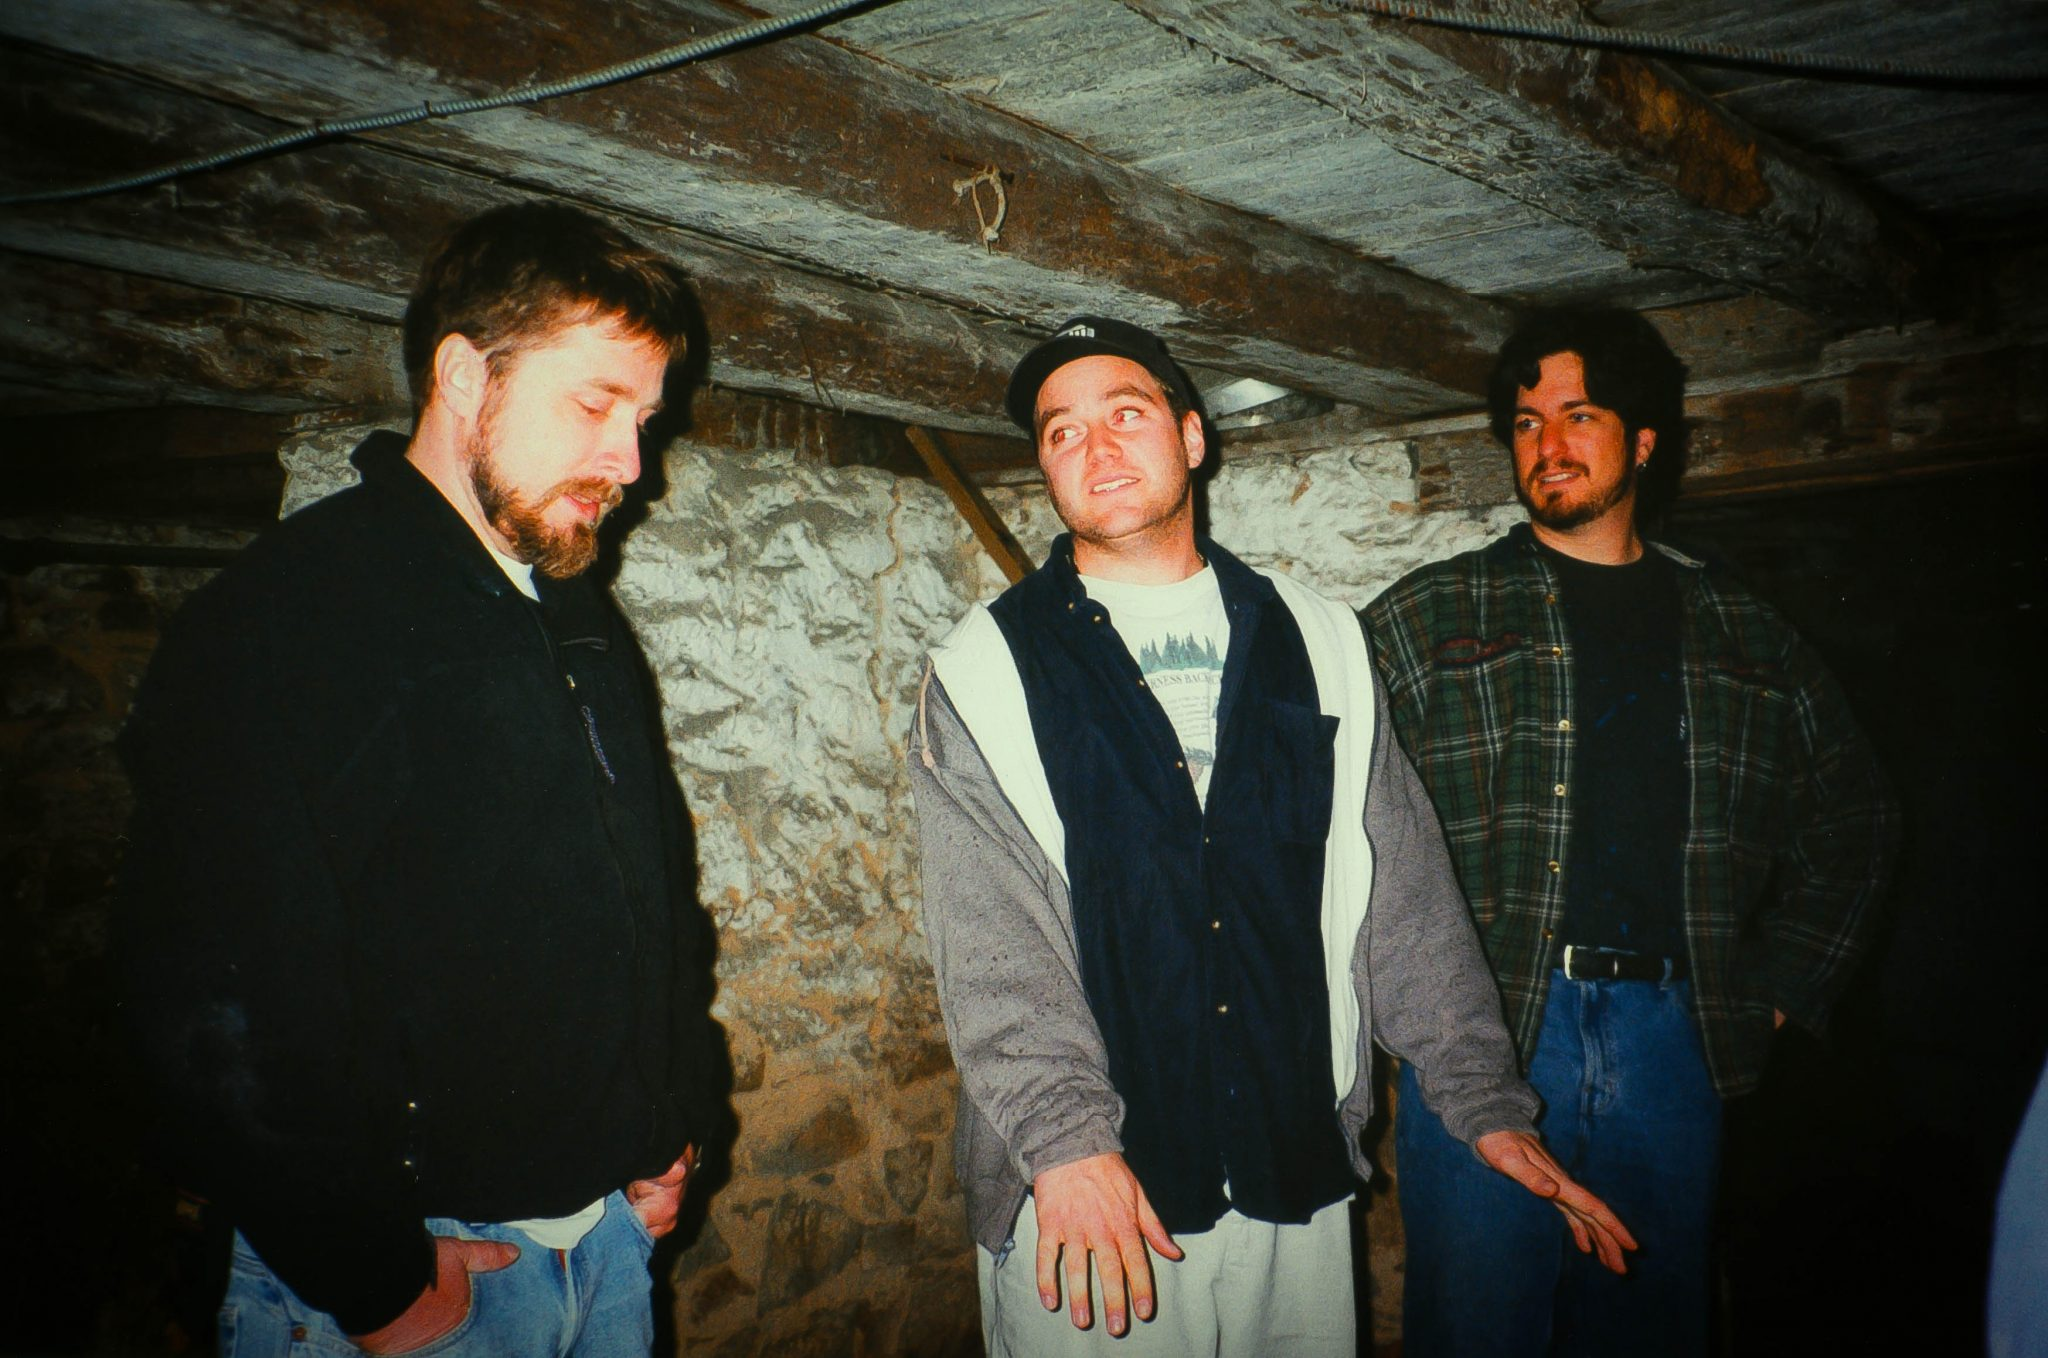 Reshoot 1 of 1 - The Making of The Blair Witch Project: Part 7 - The Embiggening